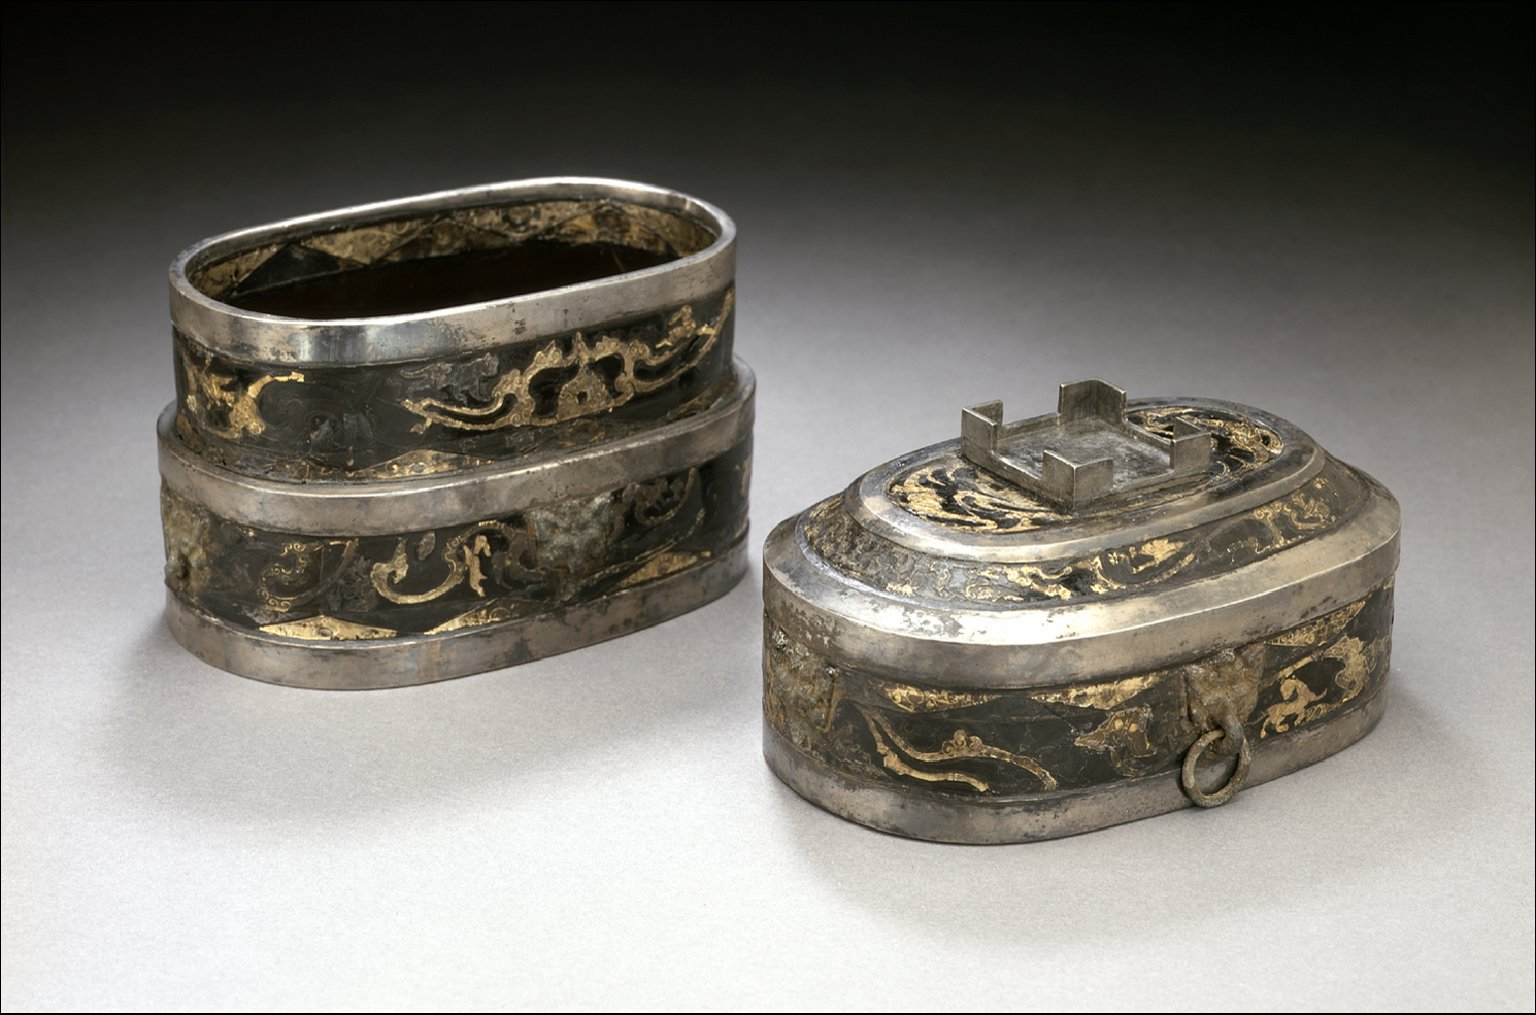 Oval Lidded Cosmetic Box (Duoyuan He) with Scrolling Clouds, Animals, and Birds